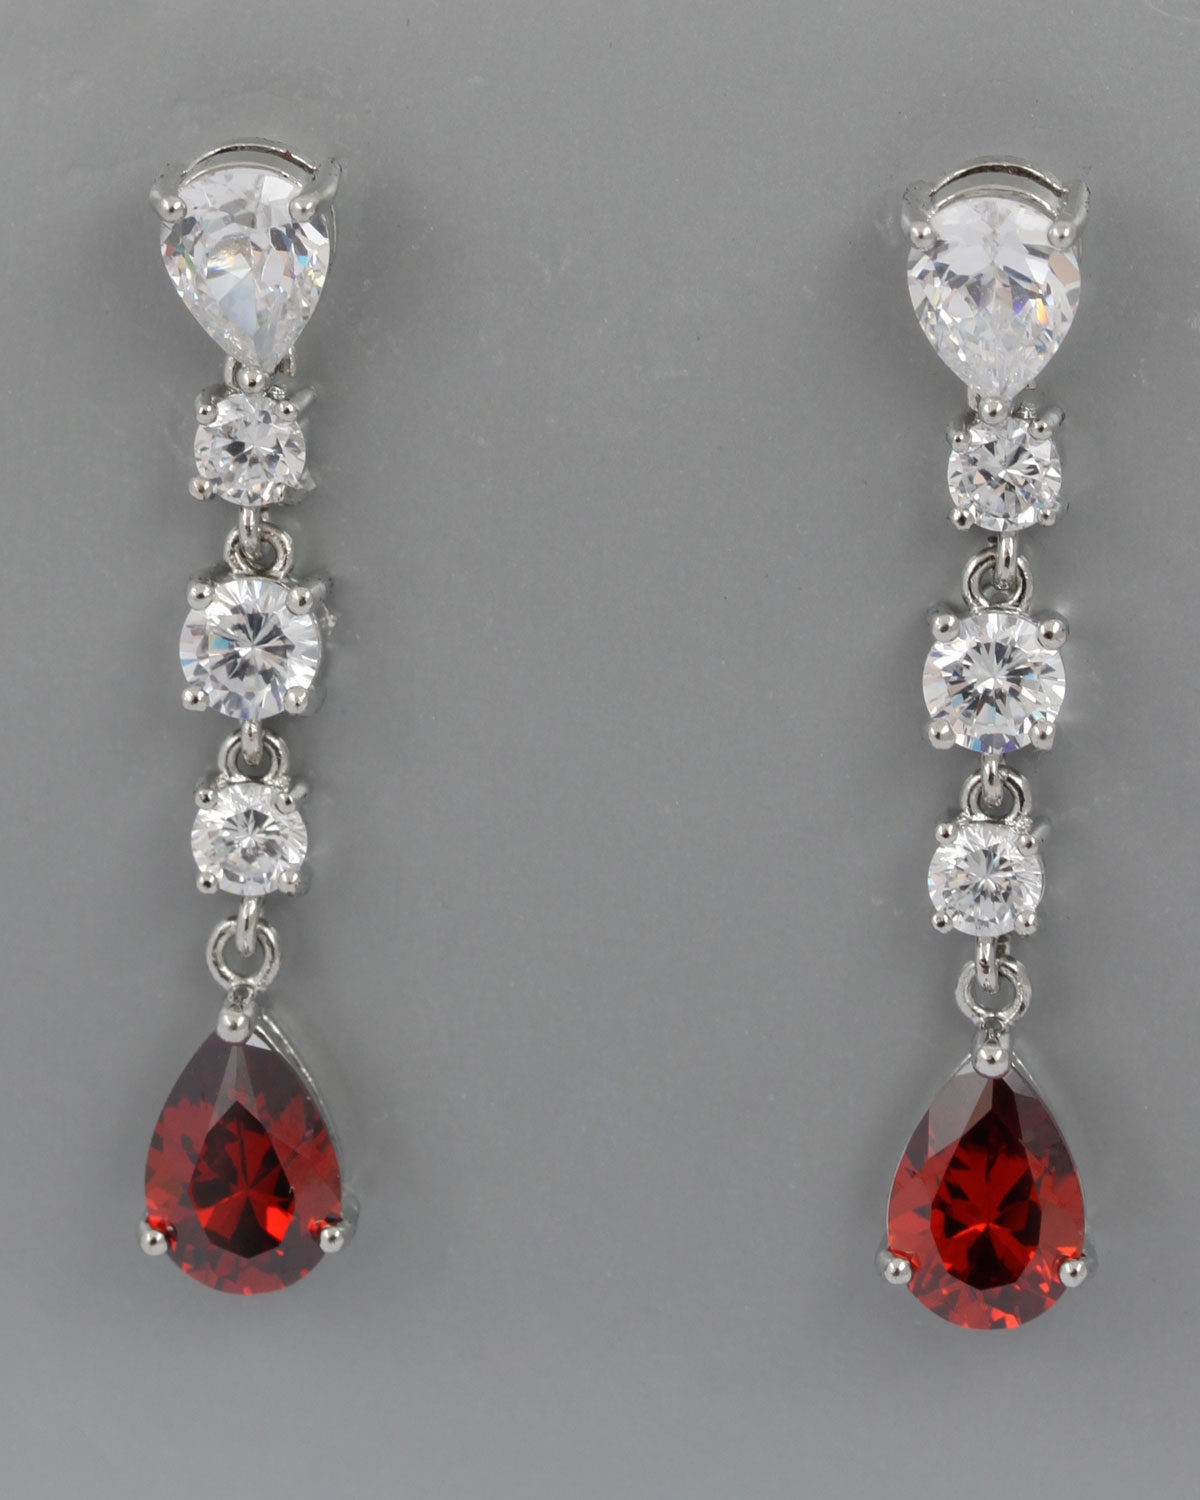 EA02-005 EVENING ELEGANCE EARRINGS